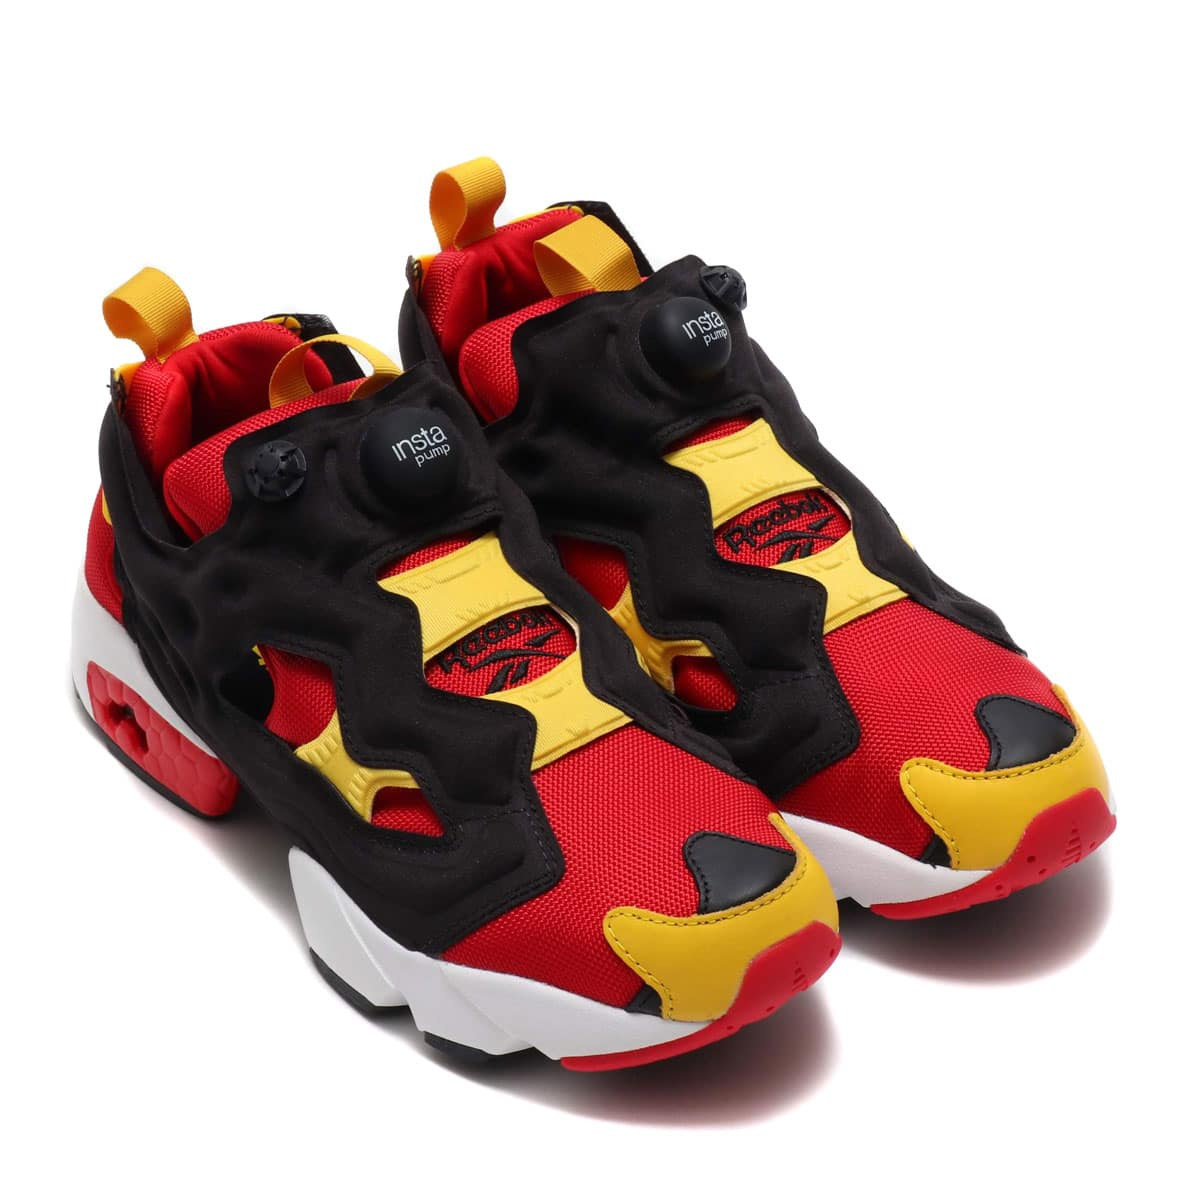 Reebok INSTAPUMP FURY OG MU SCARLET/BLACK/TOKUSICKYELLOW 20SS-S_photo_large